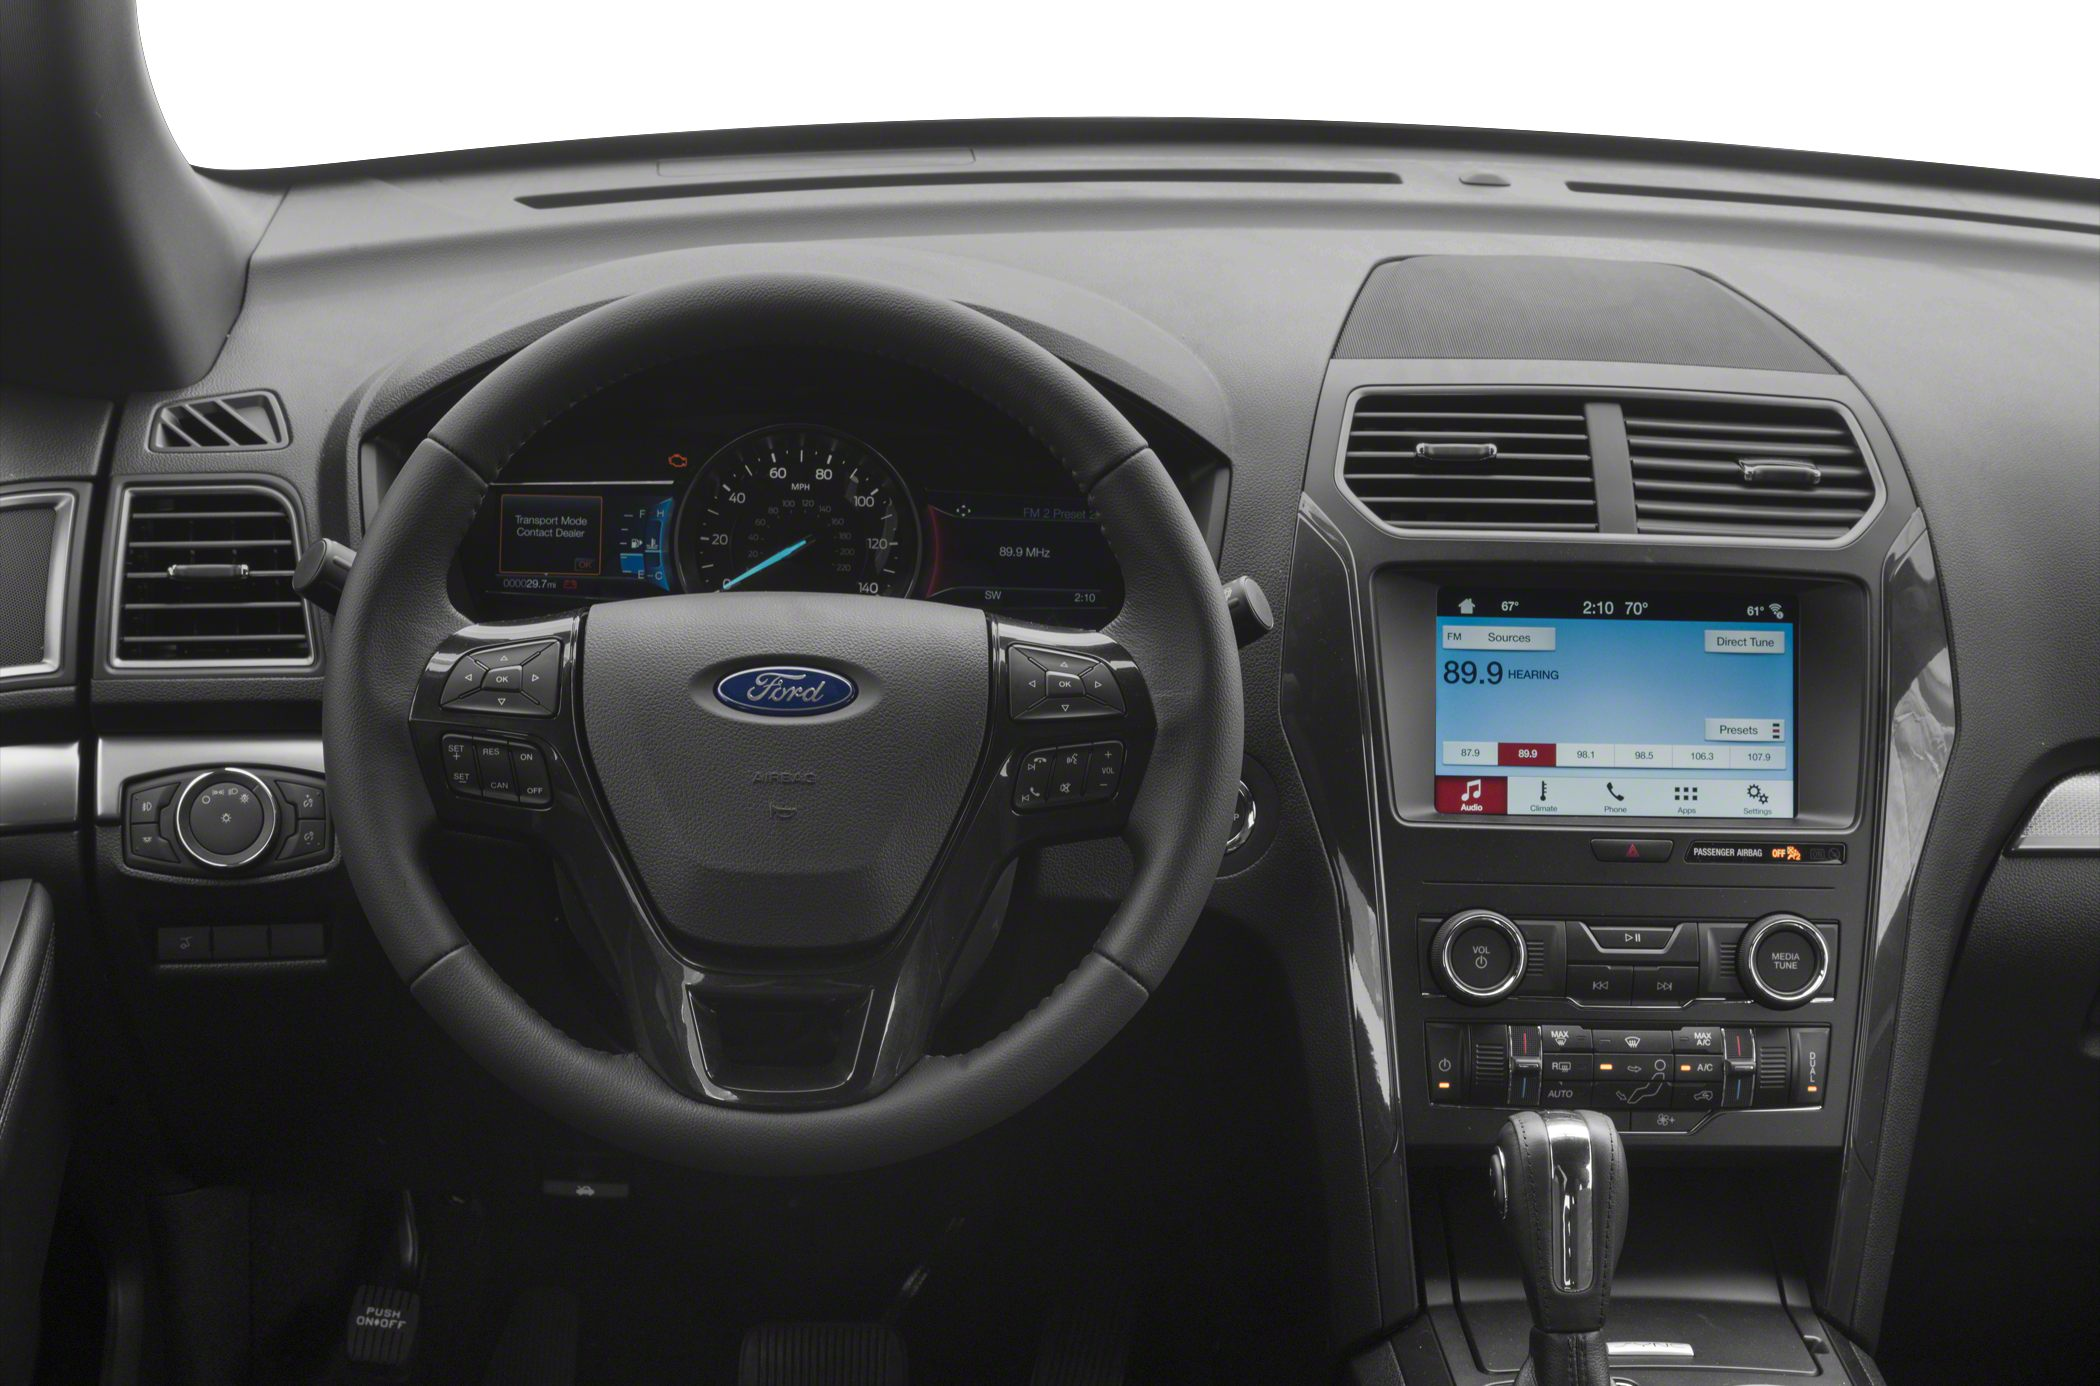 2019 Ford Explorer Deals, Prices, Incentives & Leases ...